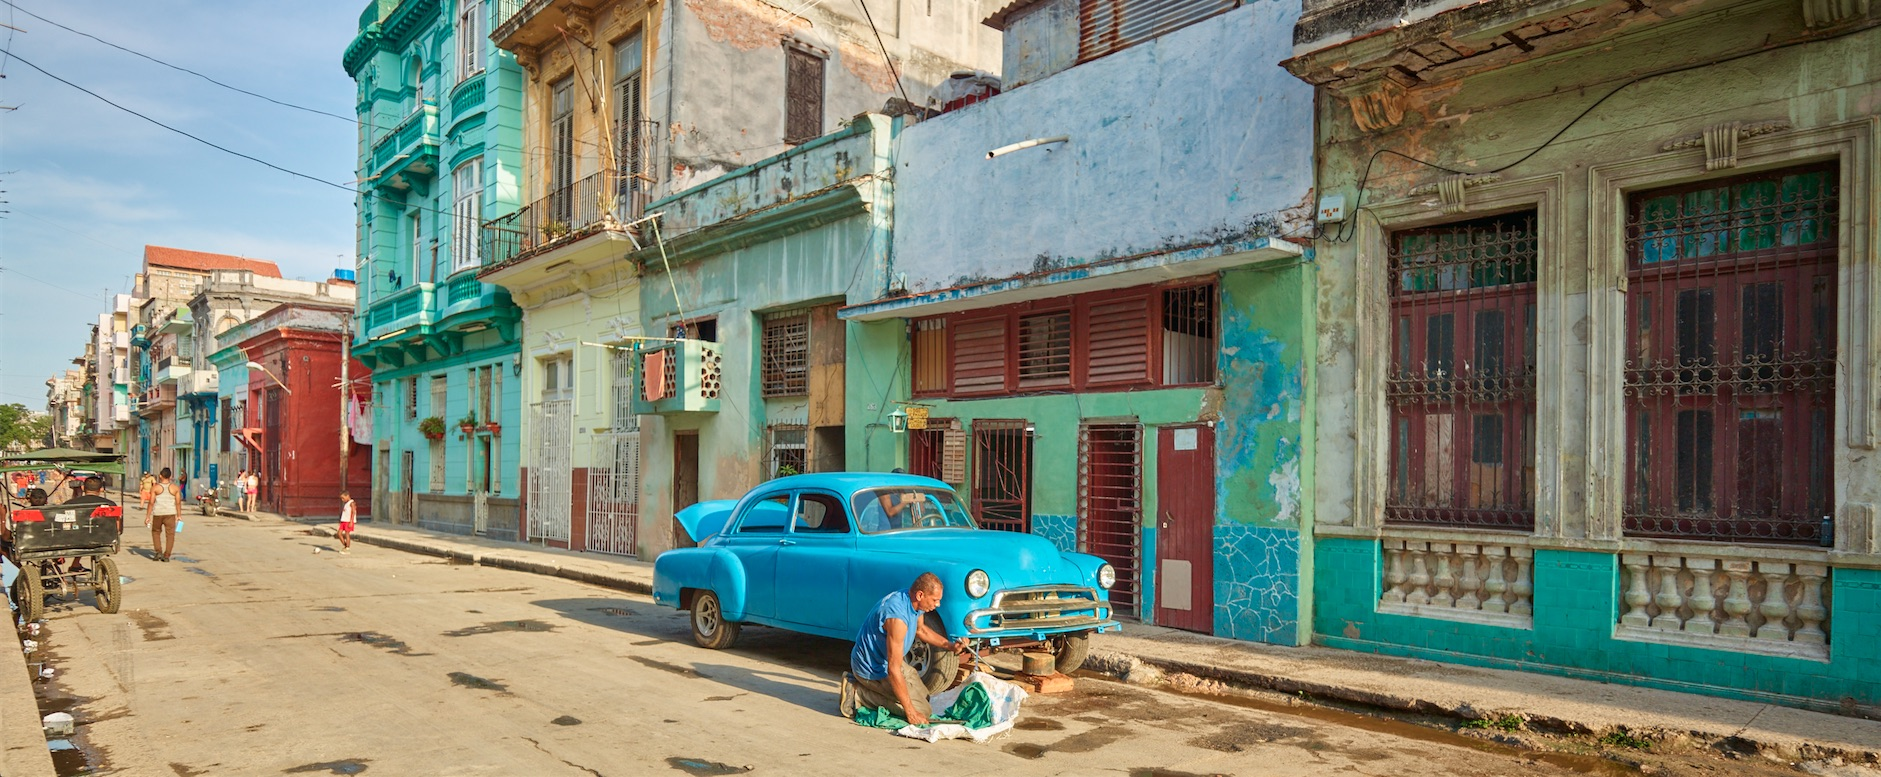 Man and Car in Cuba by lance_schad in lance_schad